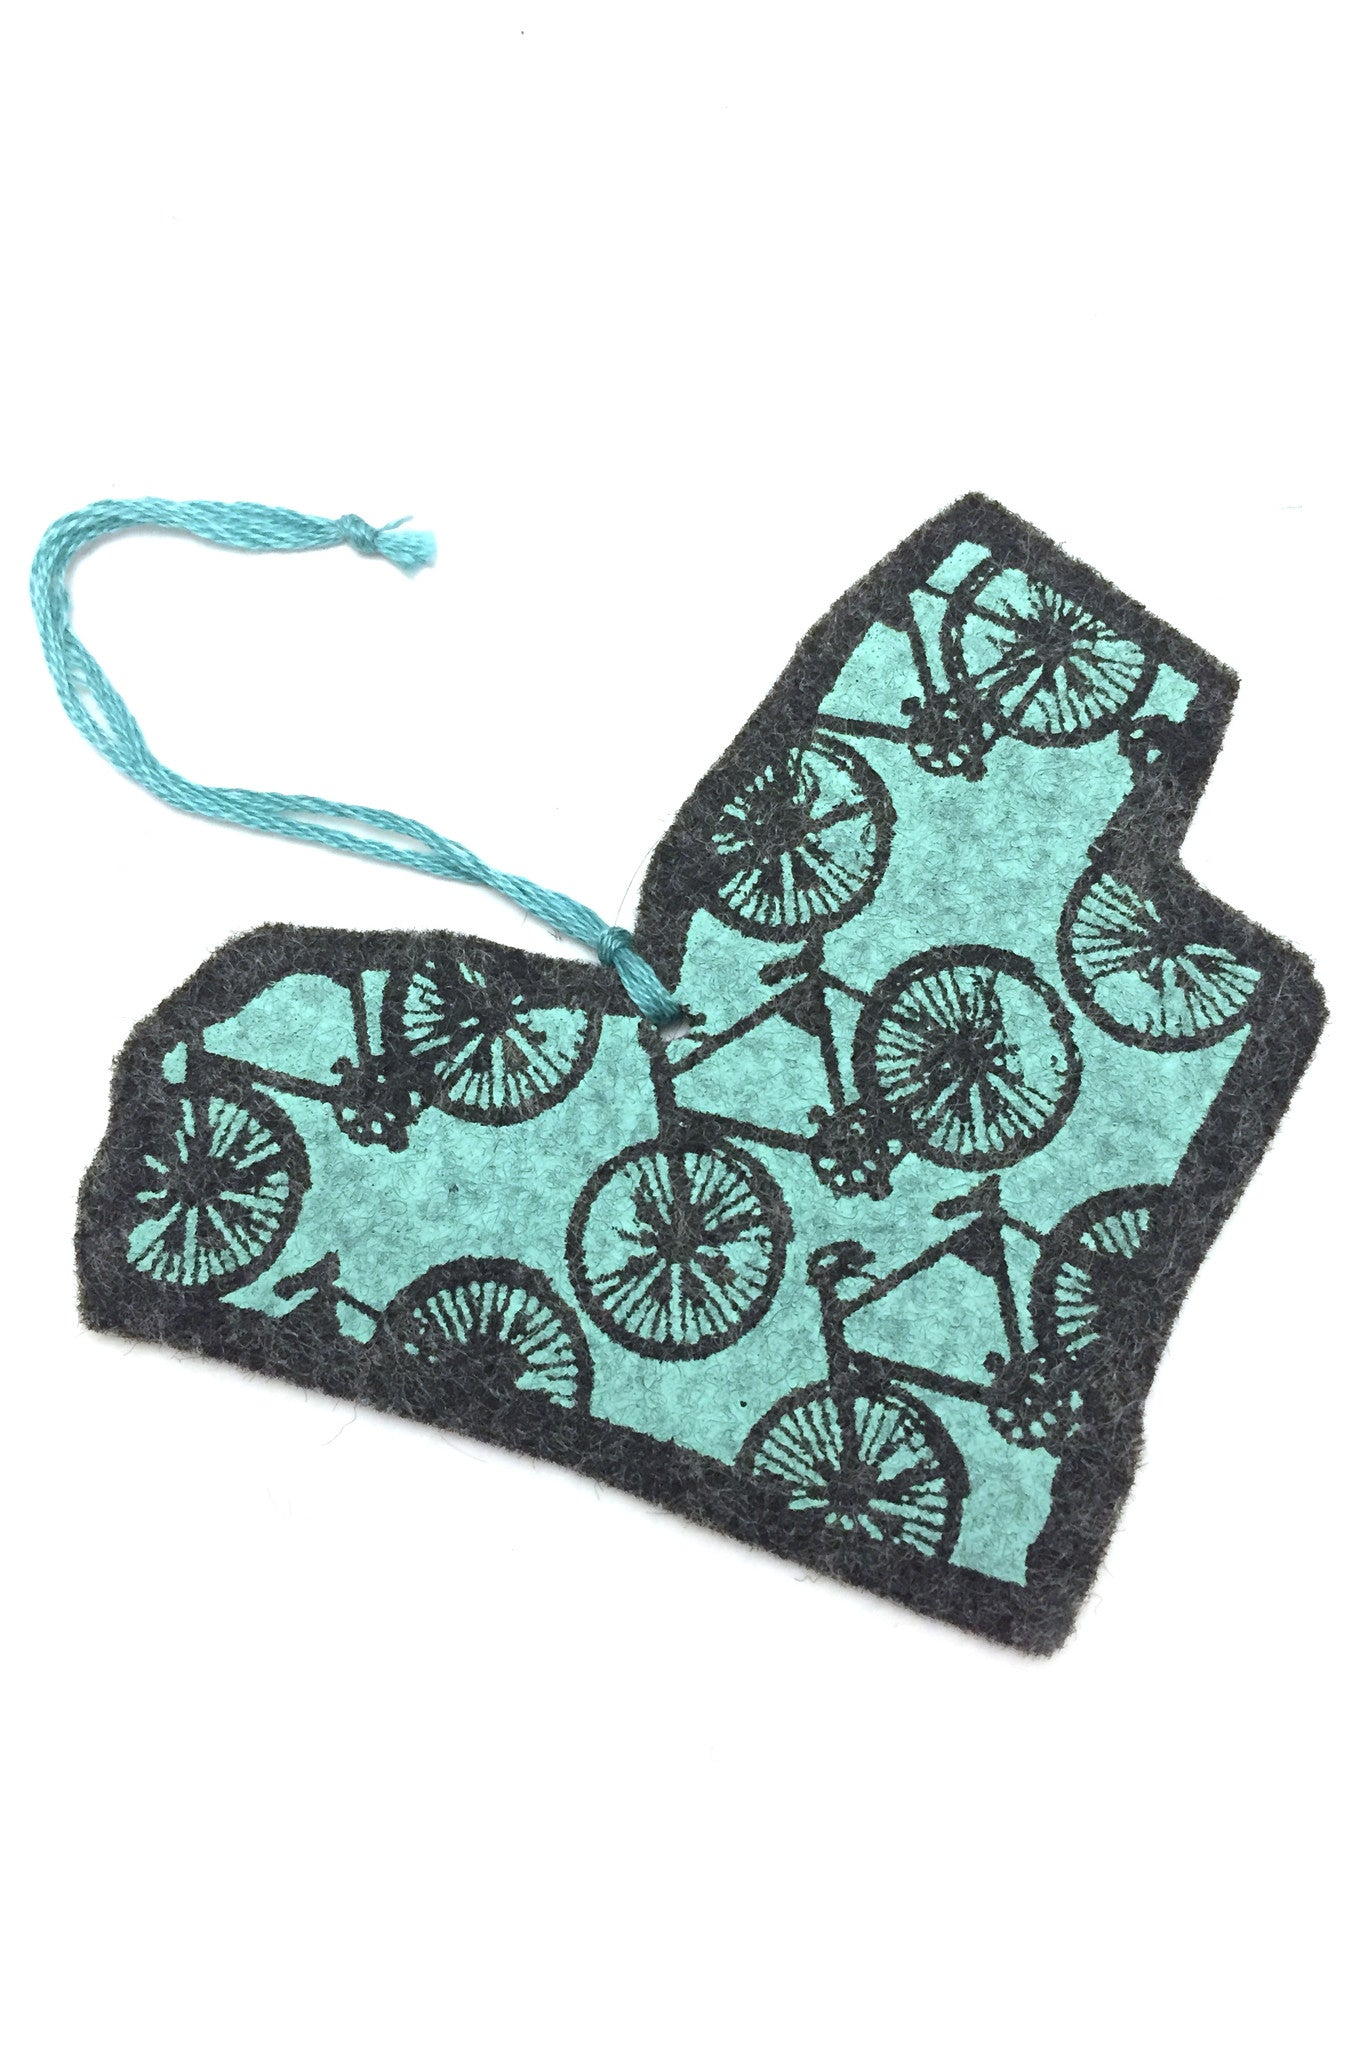 Ottawa bike love ornament, hand silkscreened felt in the shop of Ottawa